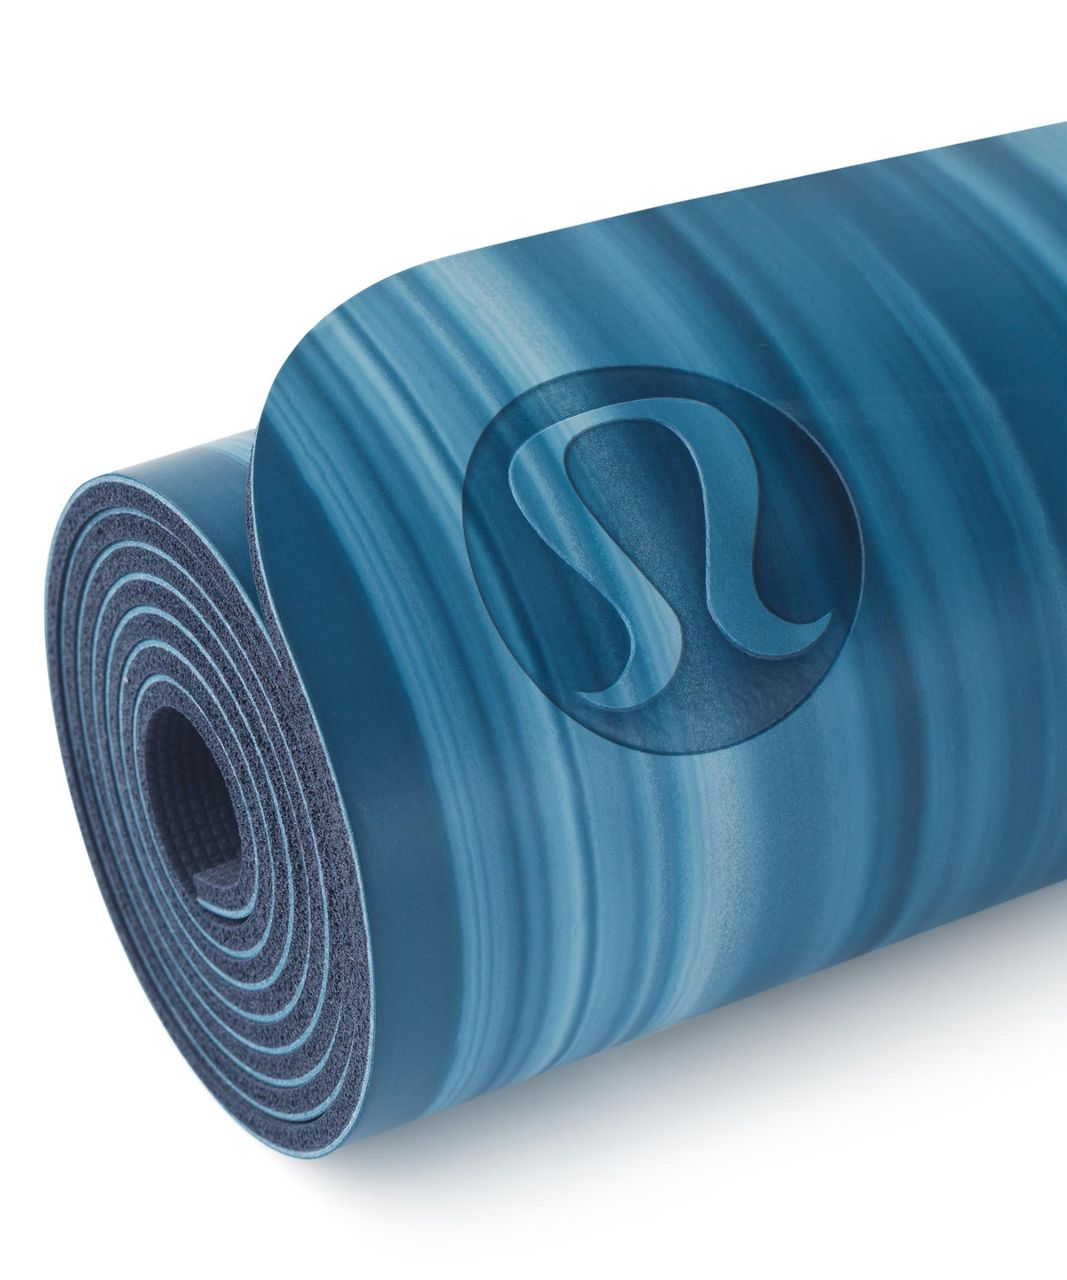 5ee2f42d98 Lululemon The Reversible Mat 5mm - Poseidon / White / Deep Navy - lulu  fanatics